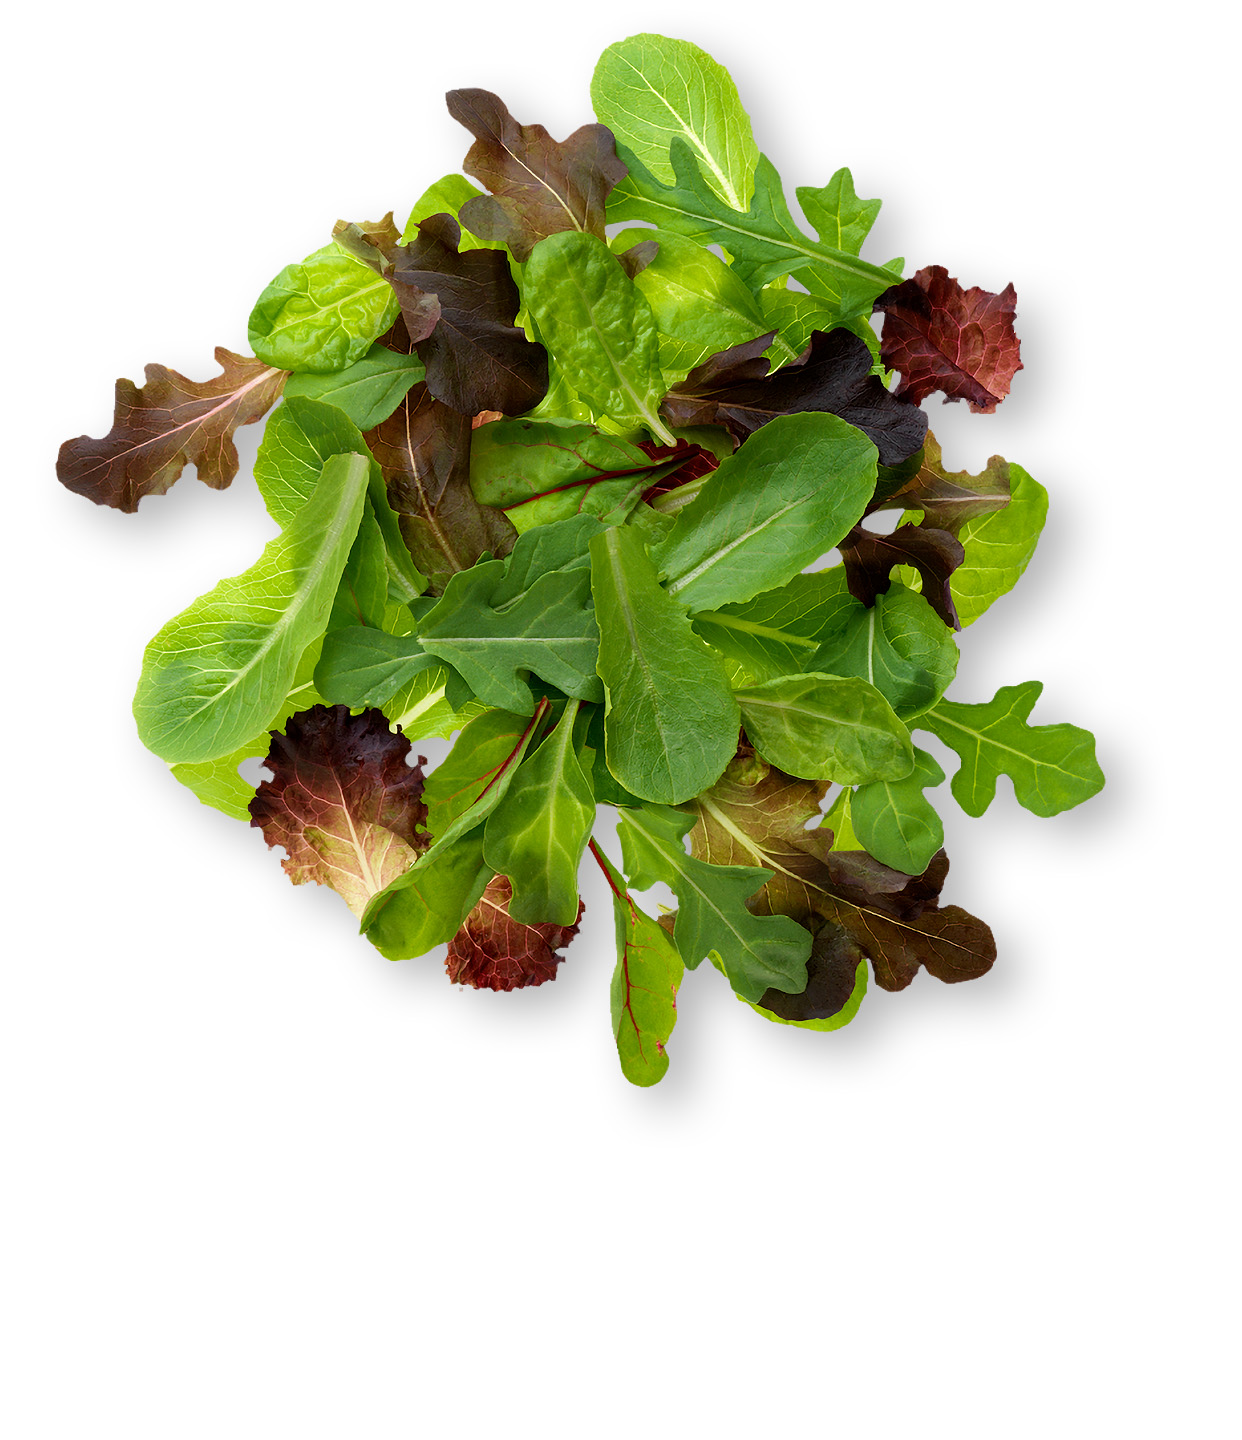 photo of spring mix salad